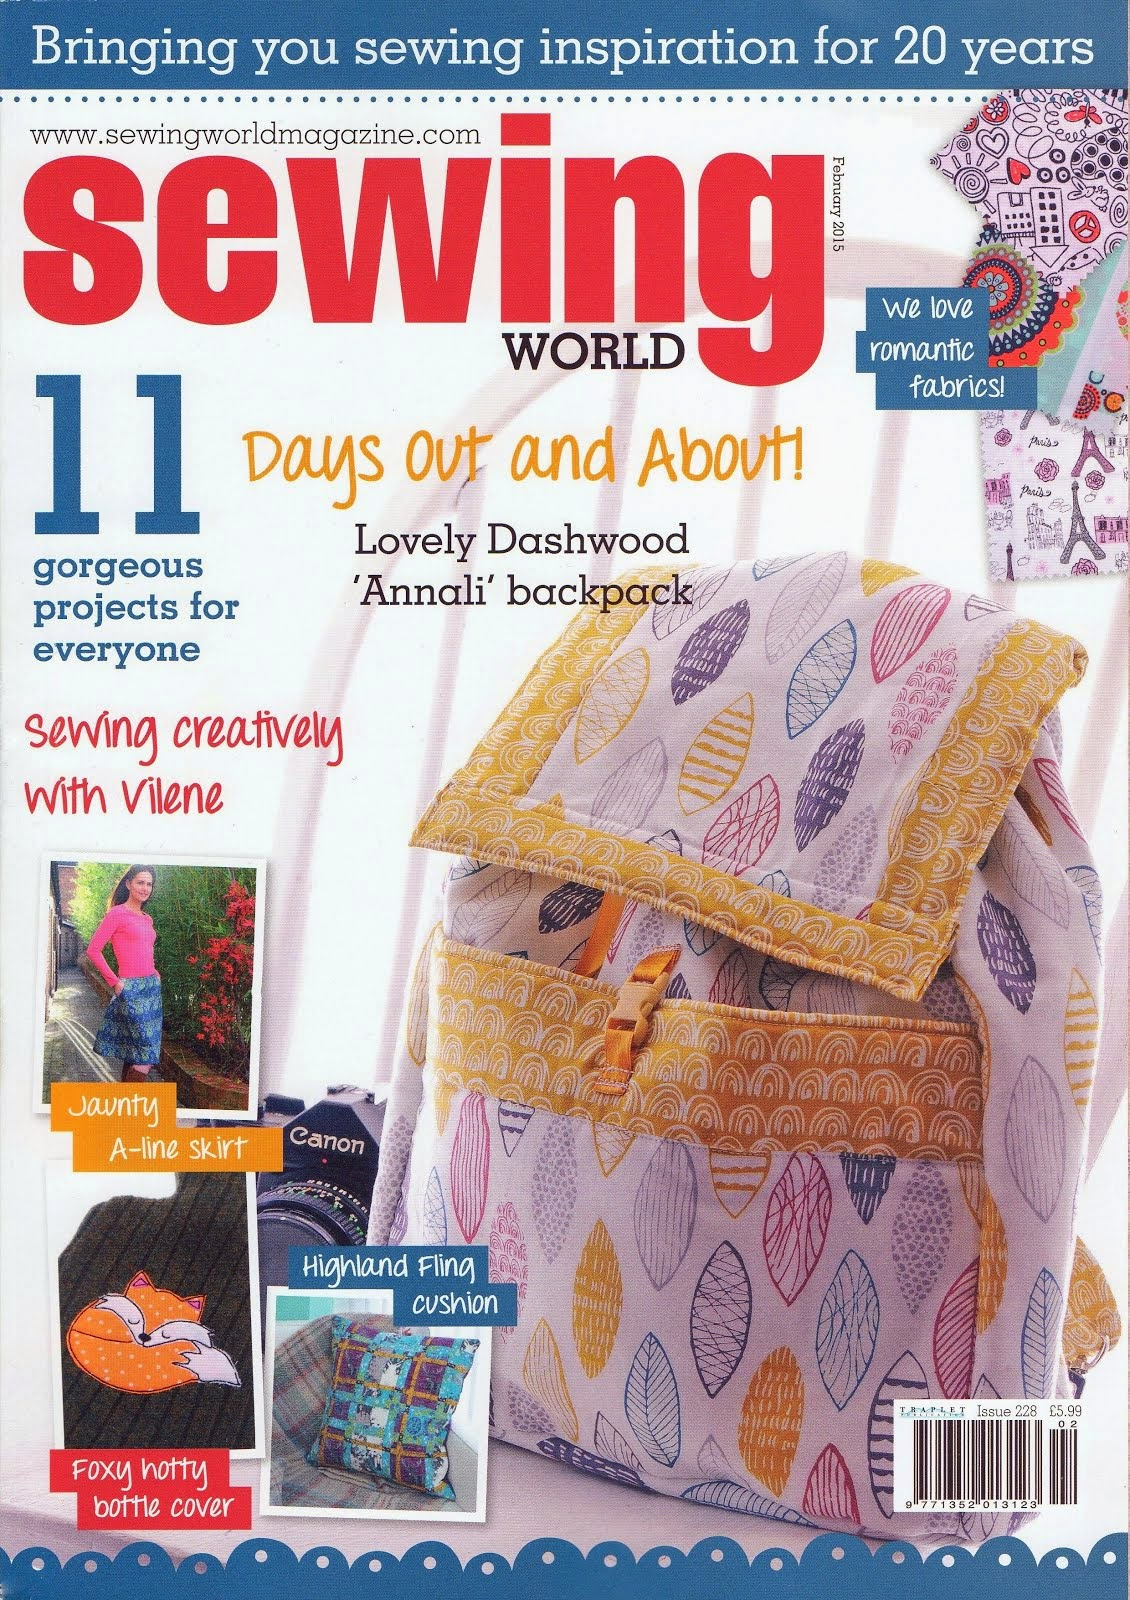 Sewing World February 2015